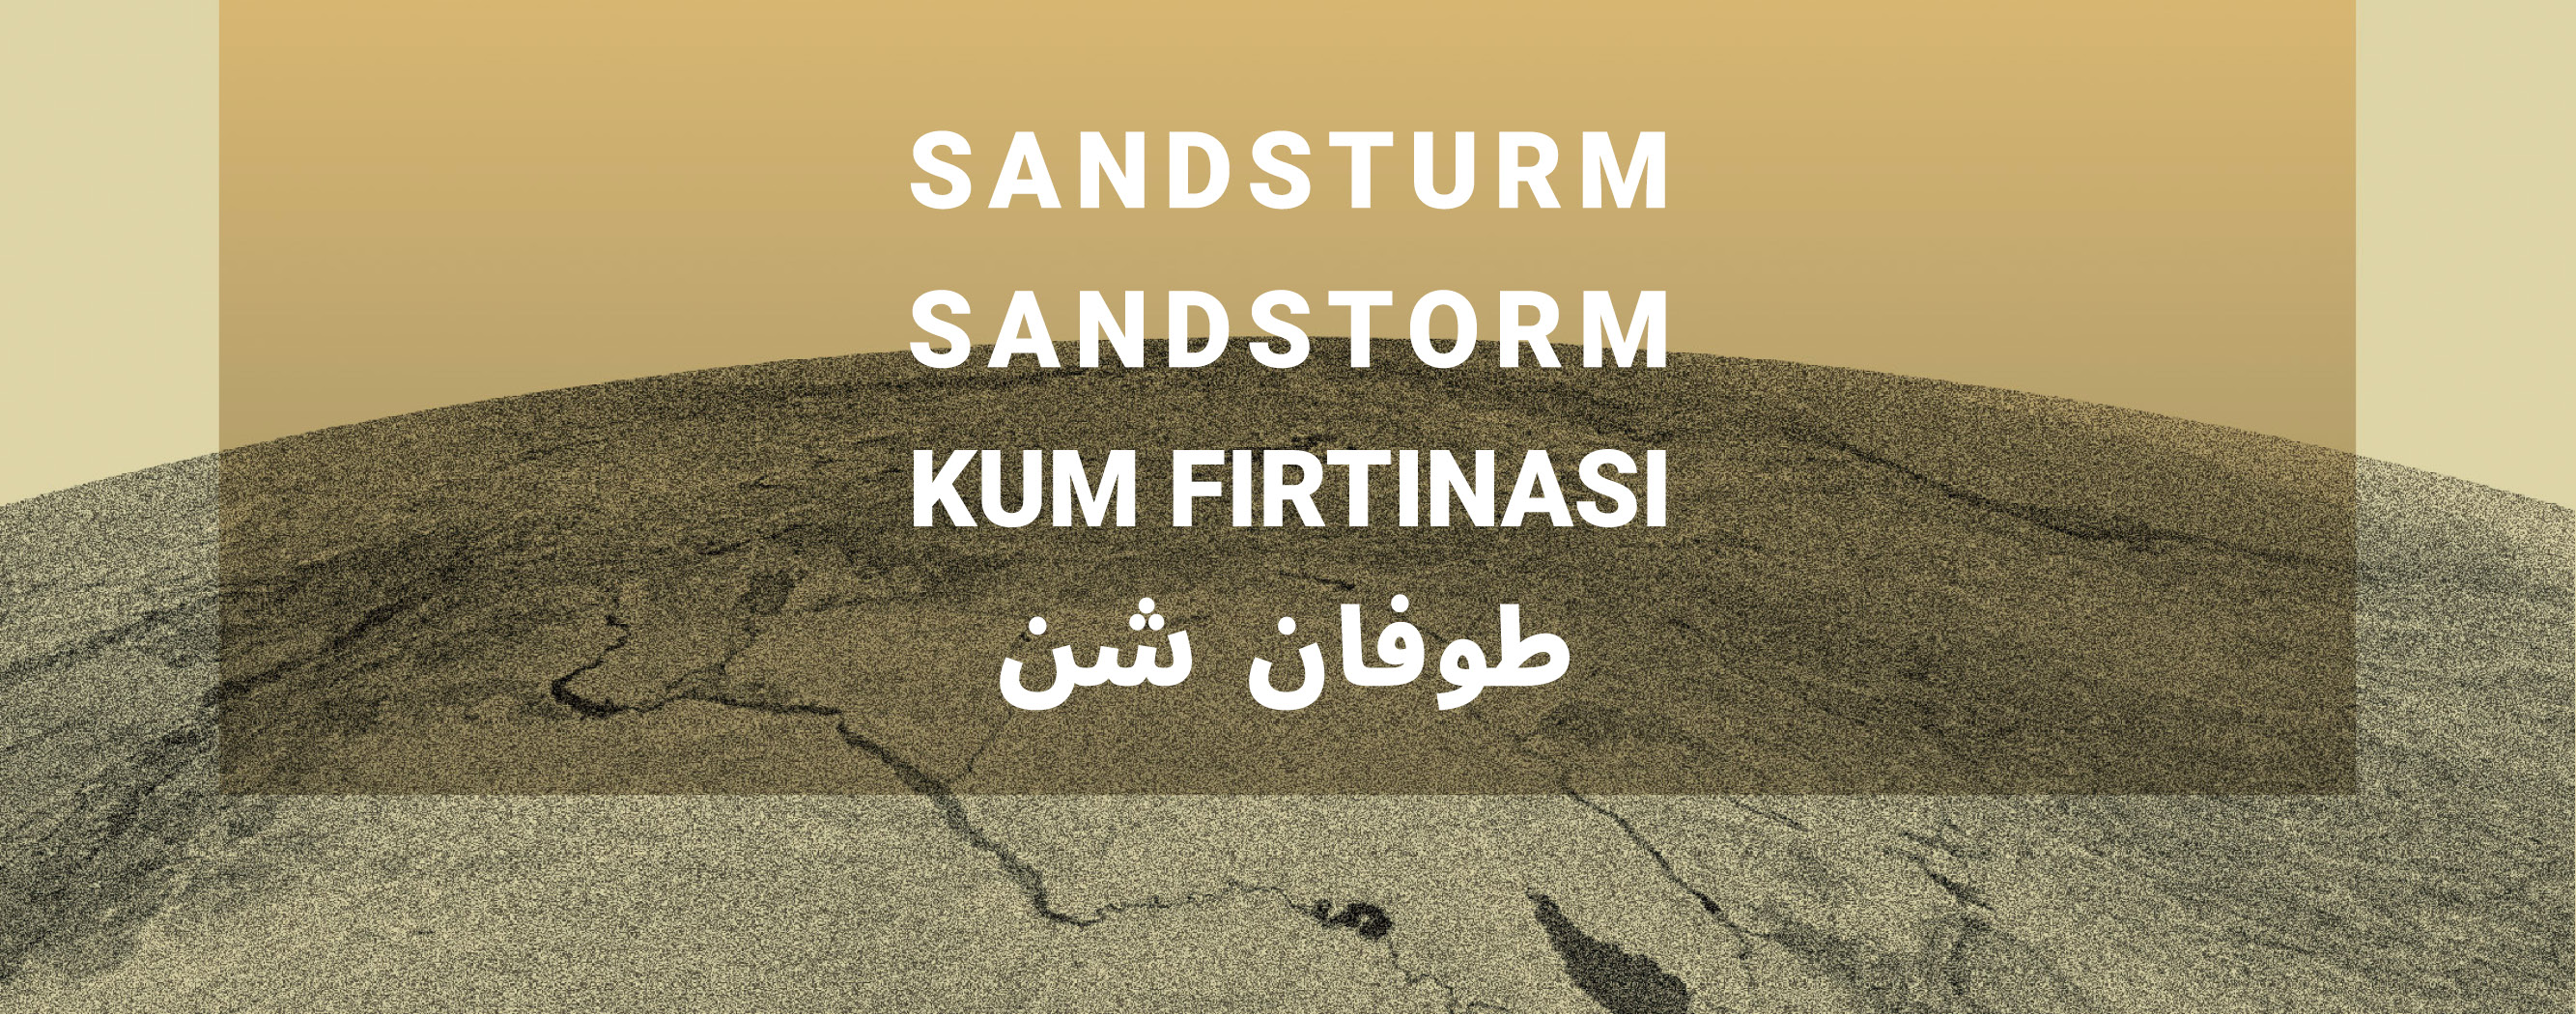 Sandsturm – And Then There Was Dust